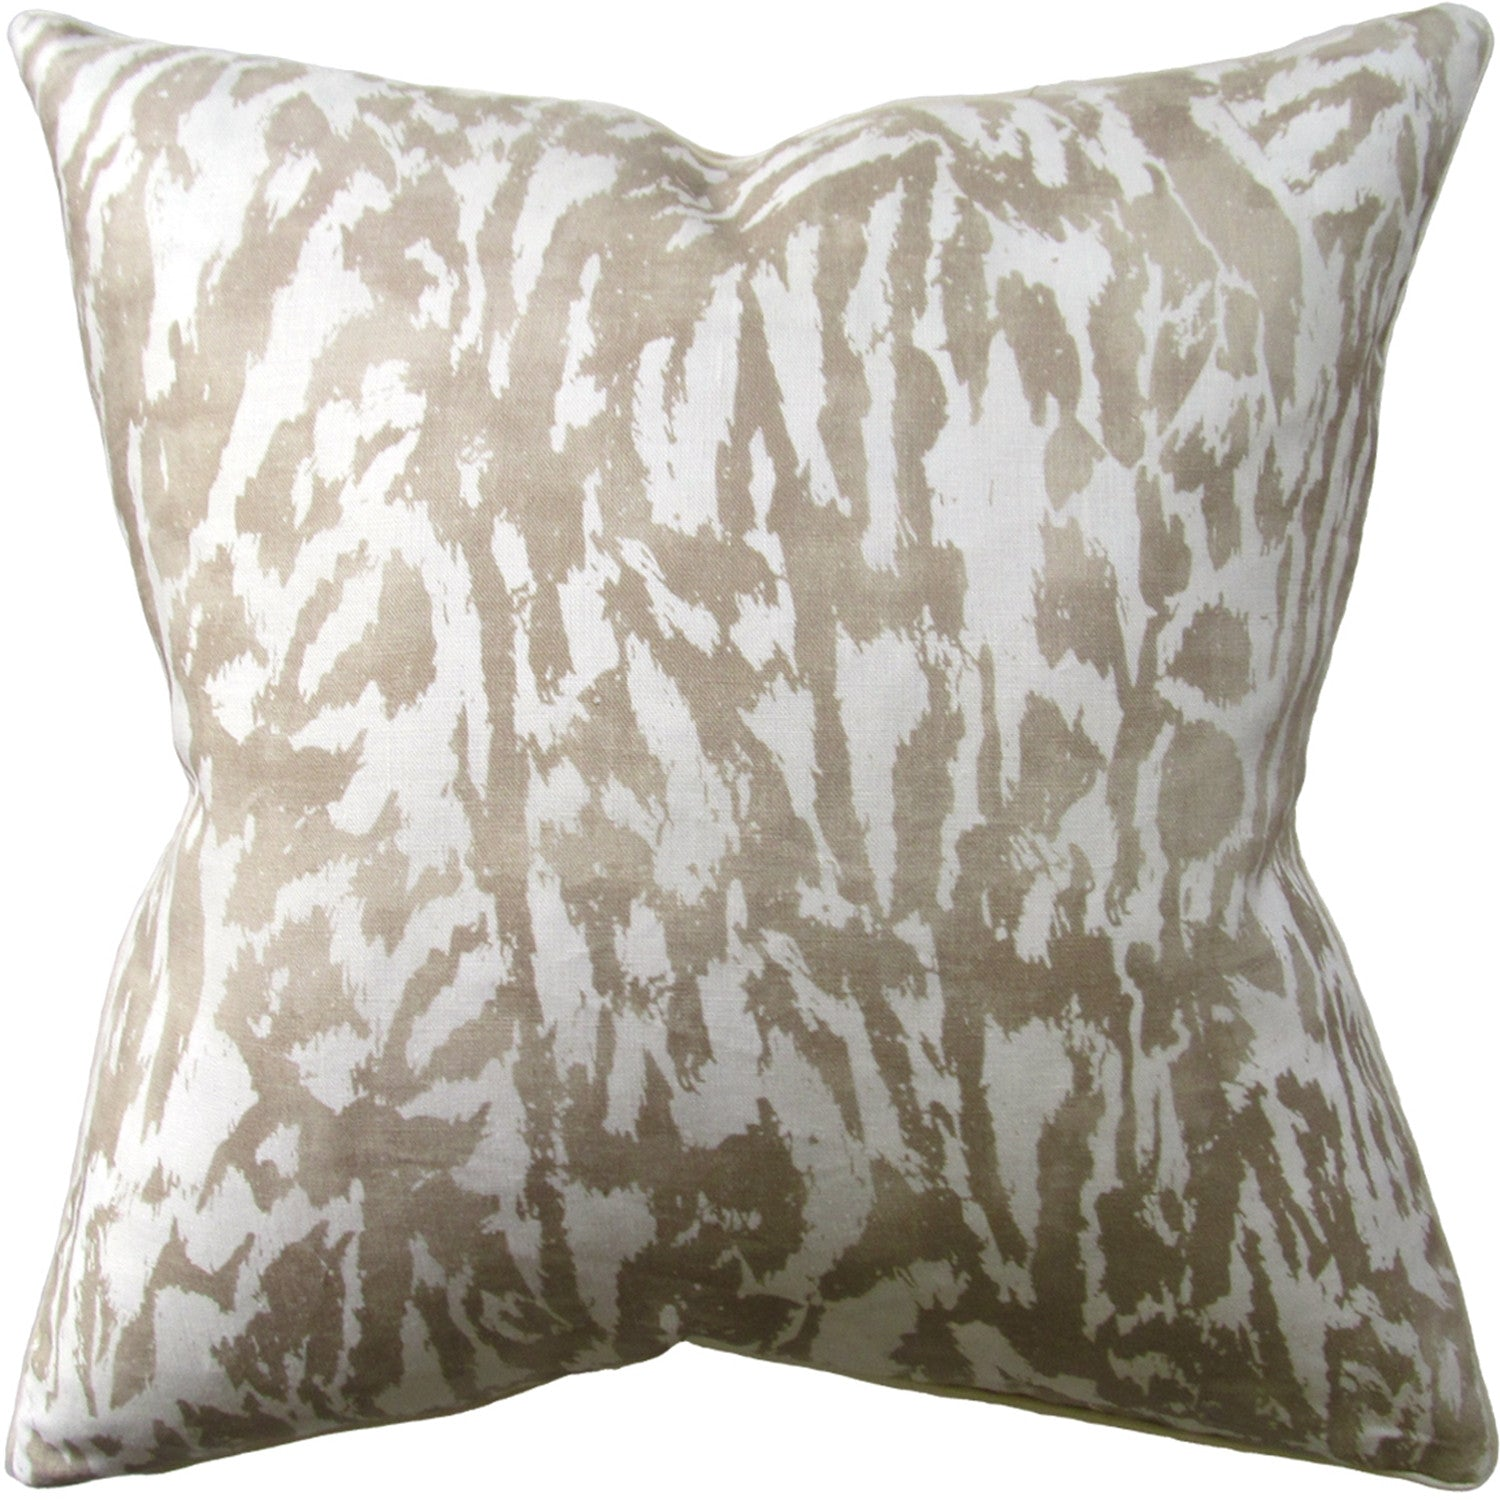 Ryan Studio Catsburg Pillow in Natural